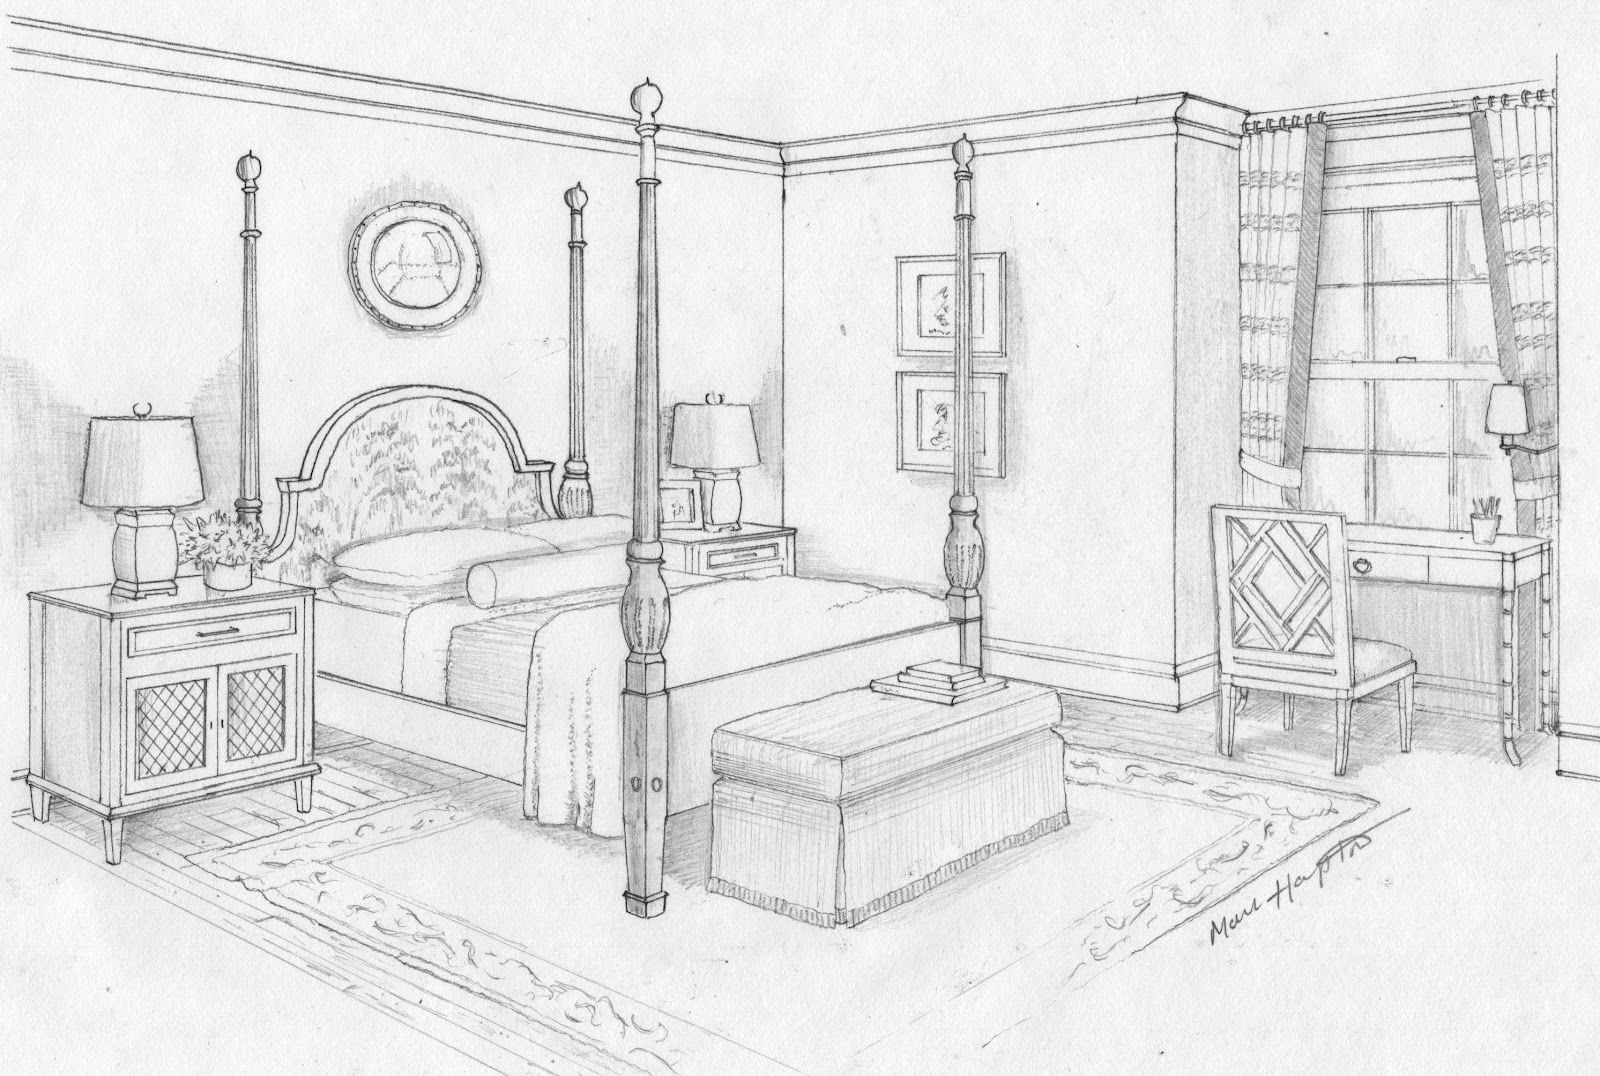 Sketch A Room dream bedroom sketch | bedroom ideas pictures | art | pinterest